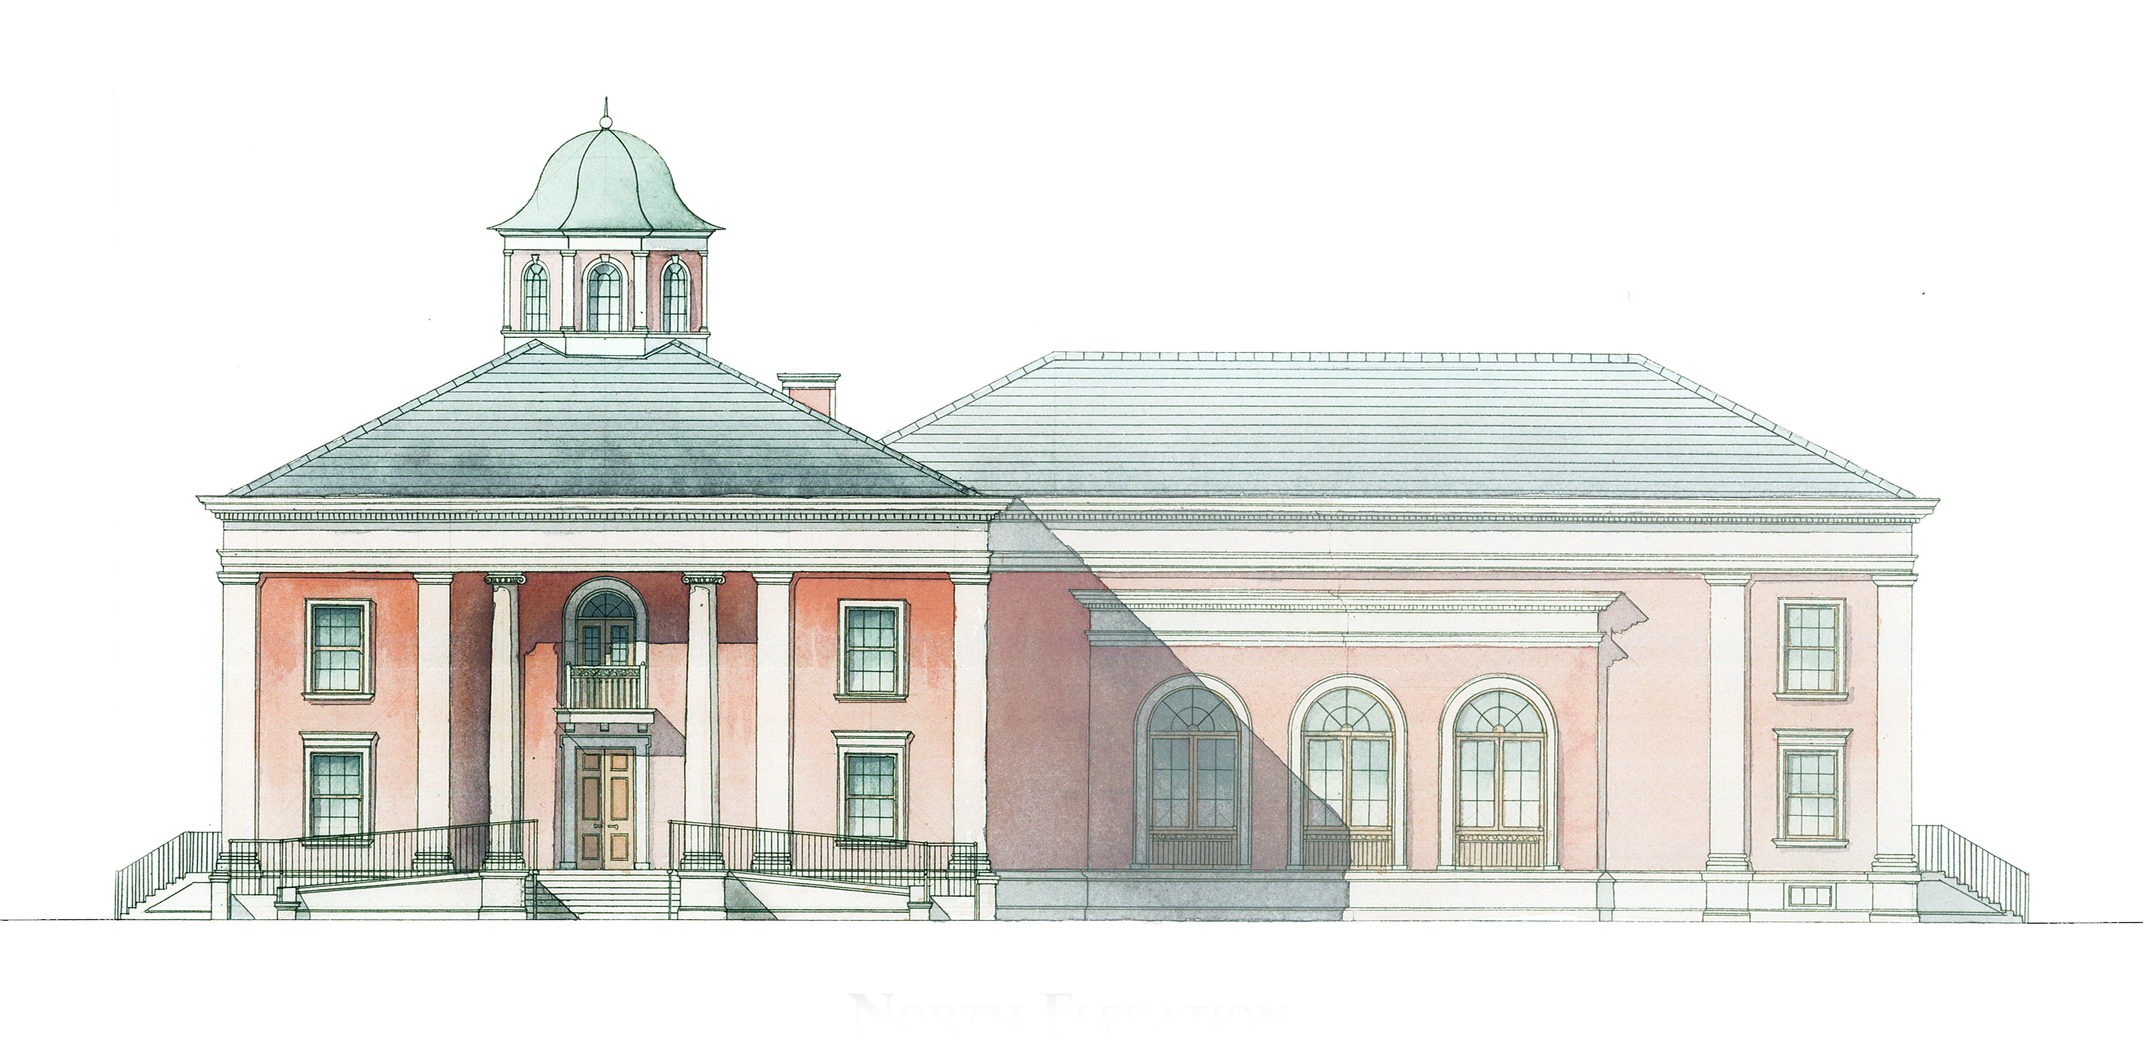 Proposed Campus Building & Ceremonial Hall